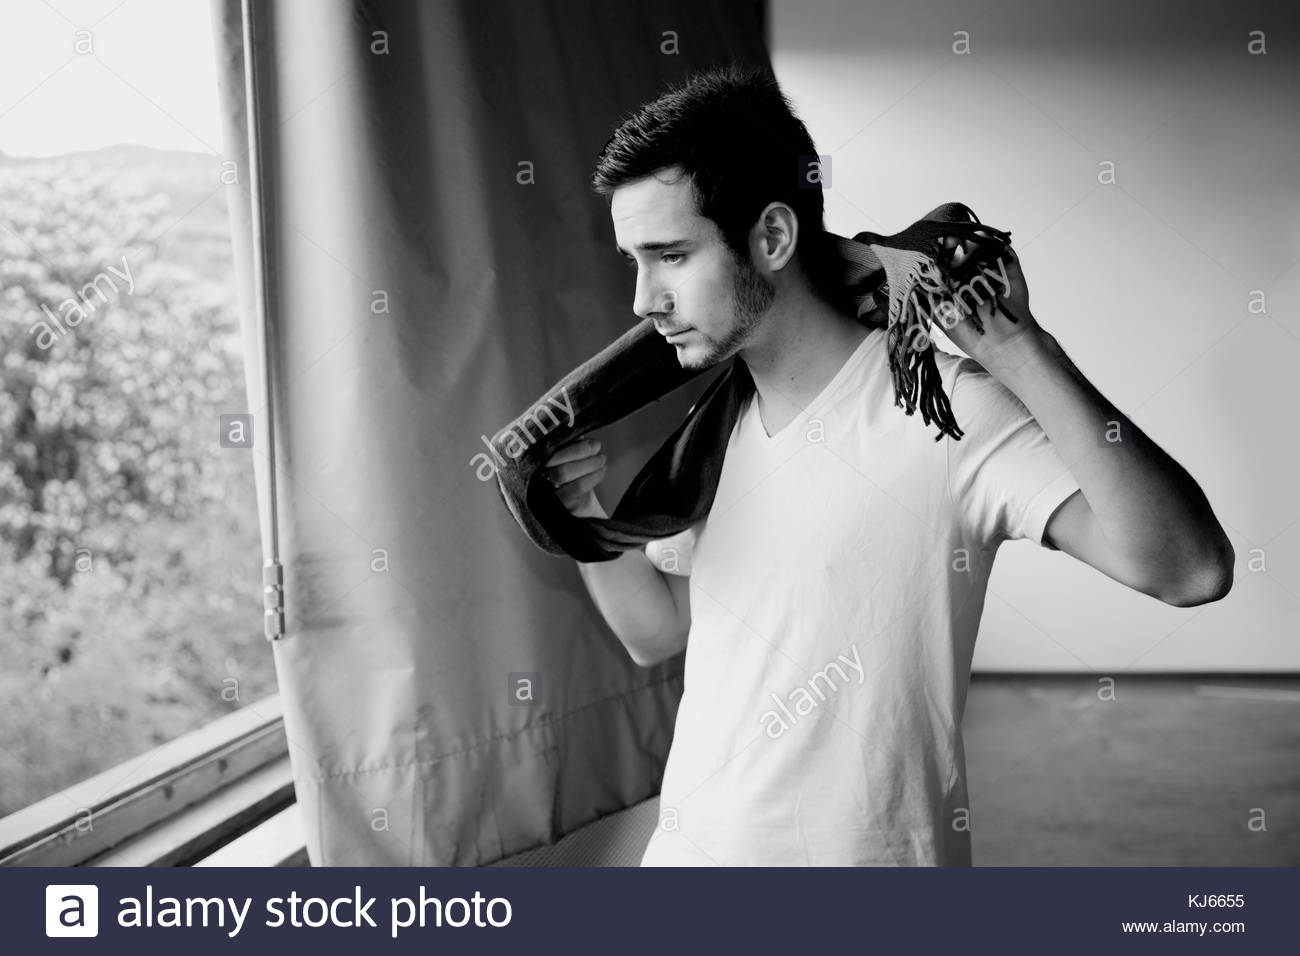 Young man with scarf - Stock Image